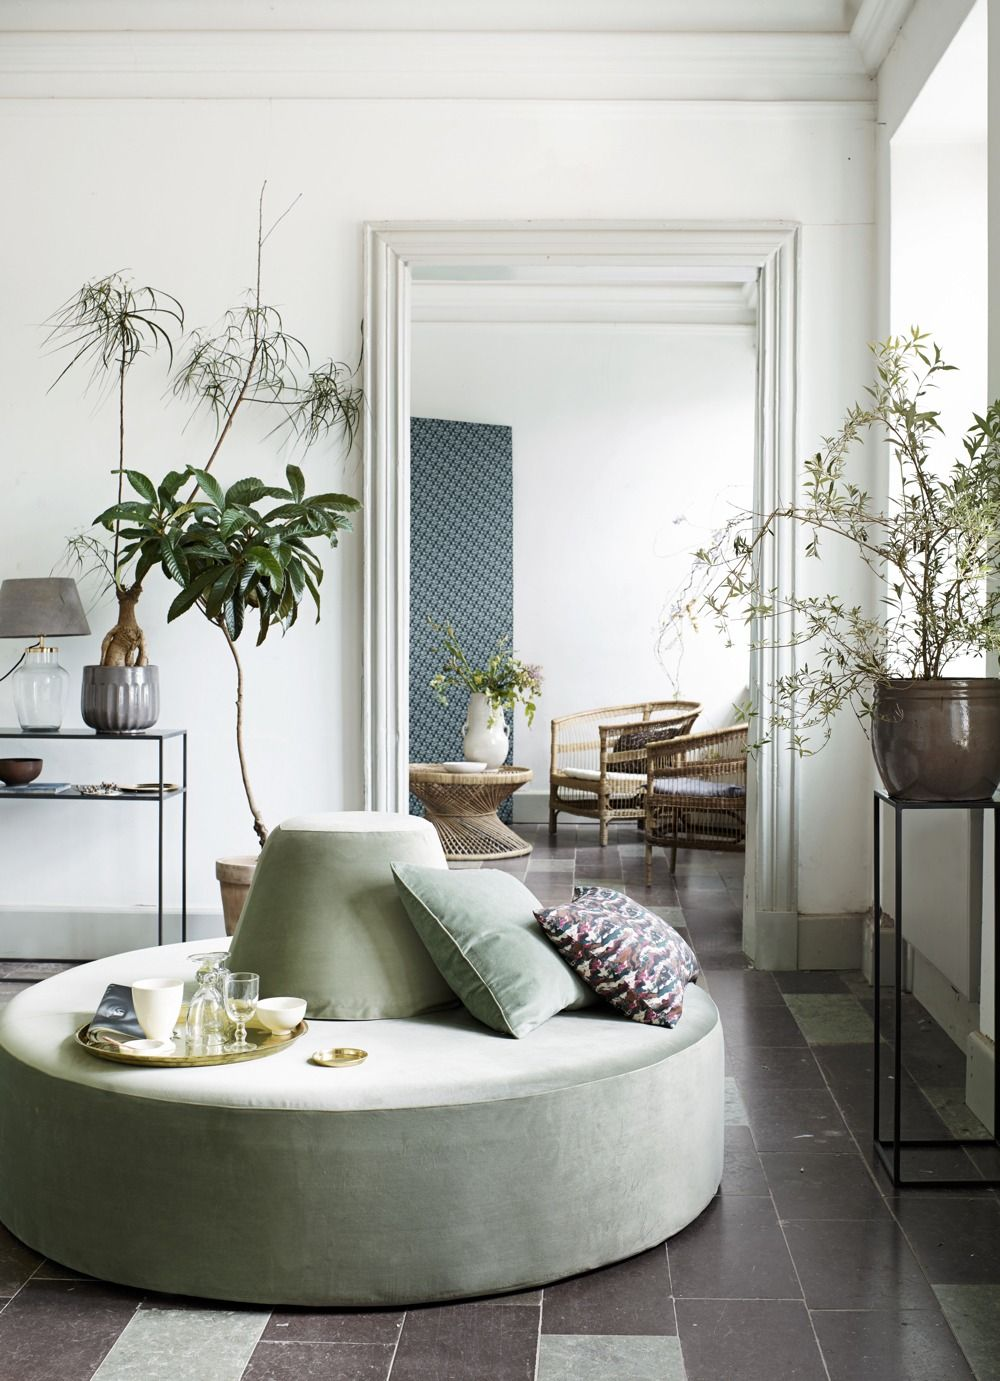 Deko Trends 2017 Schlafzimmer How To Decorate With Pantone Color Of The Year 2017 Greenery